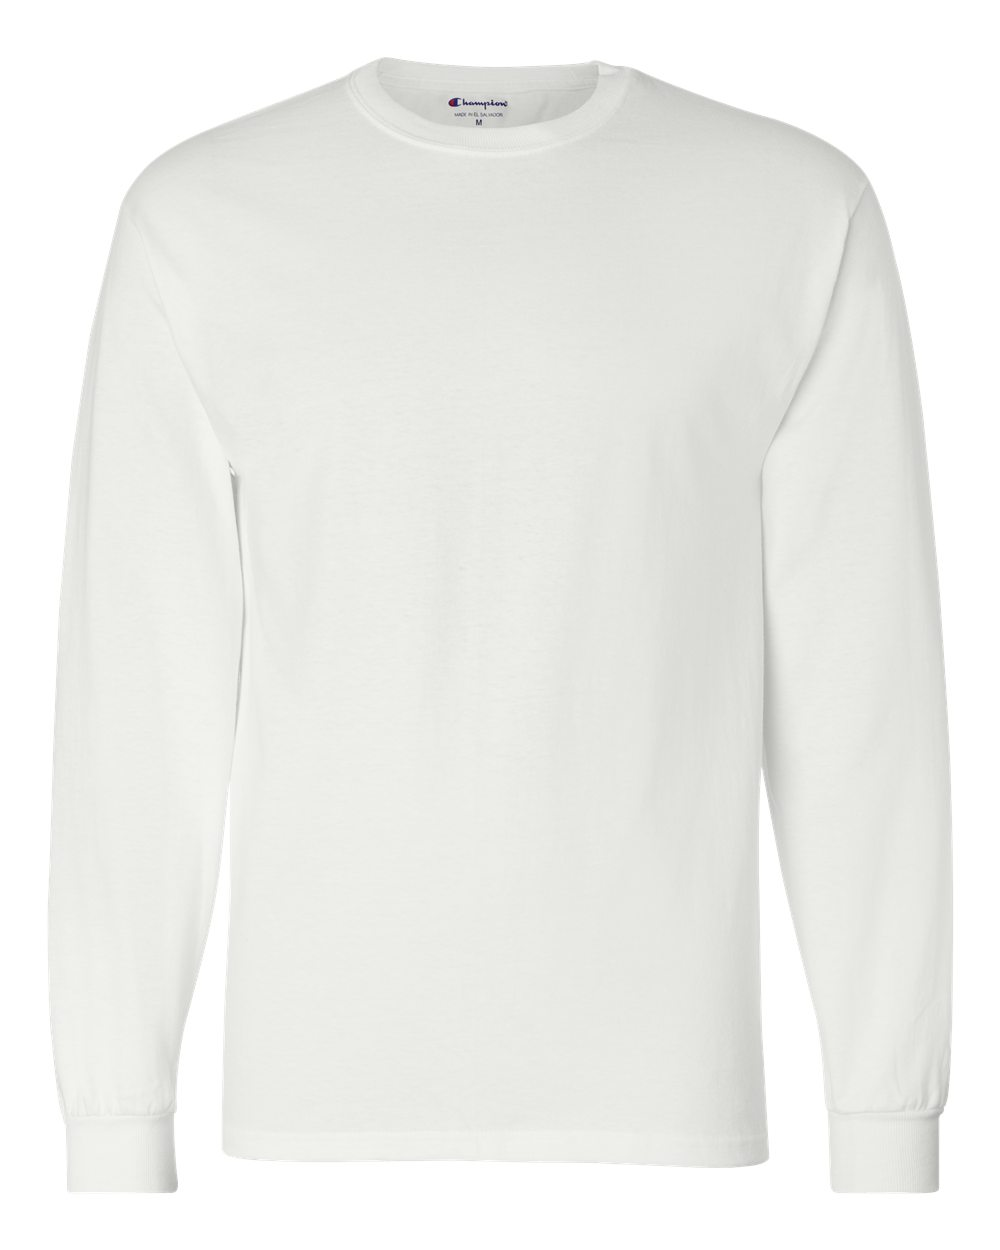 Champion C9 Base Layer Lightweight Fitted Long Sleeve Shirt Men/'s Size Large Blk